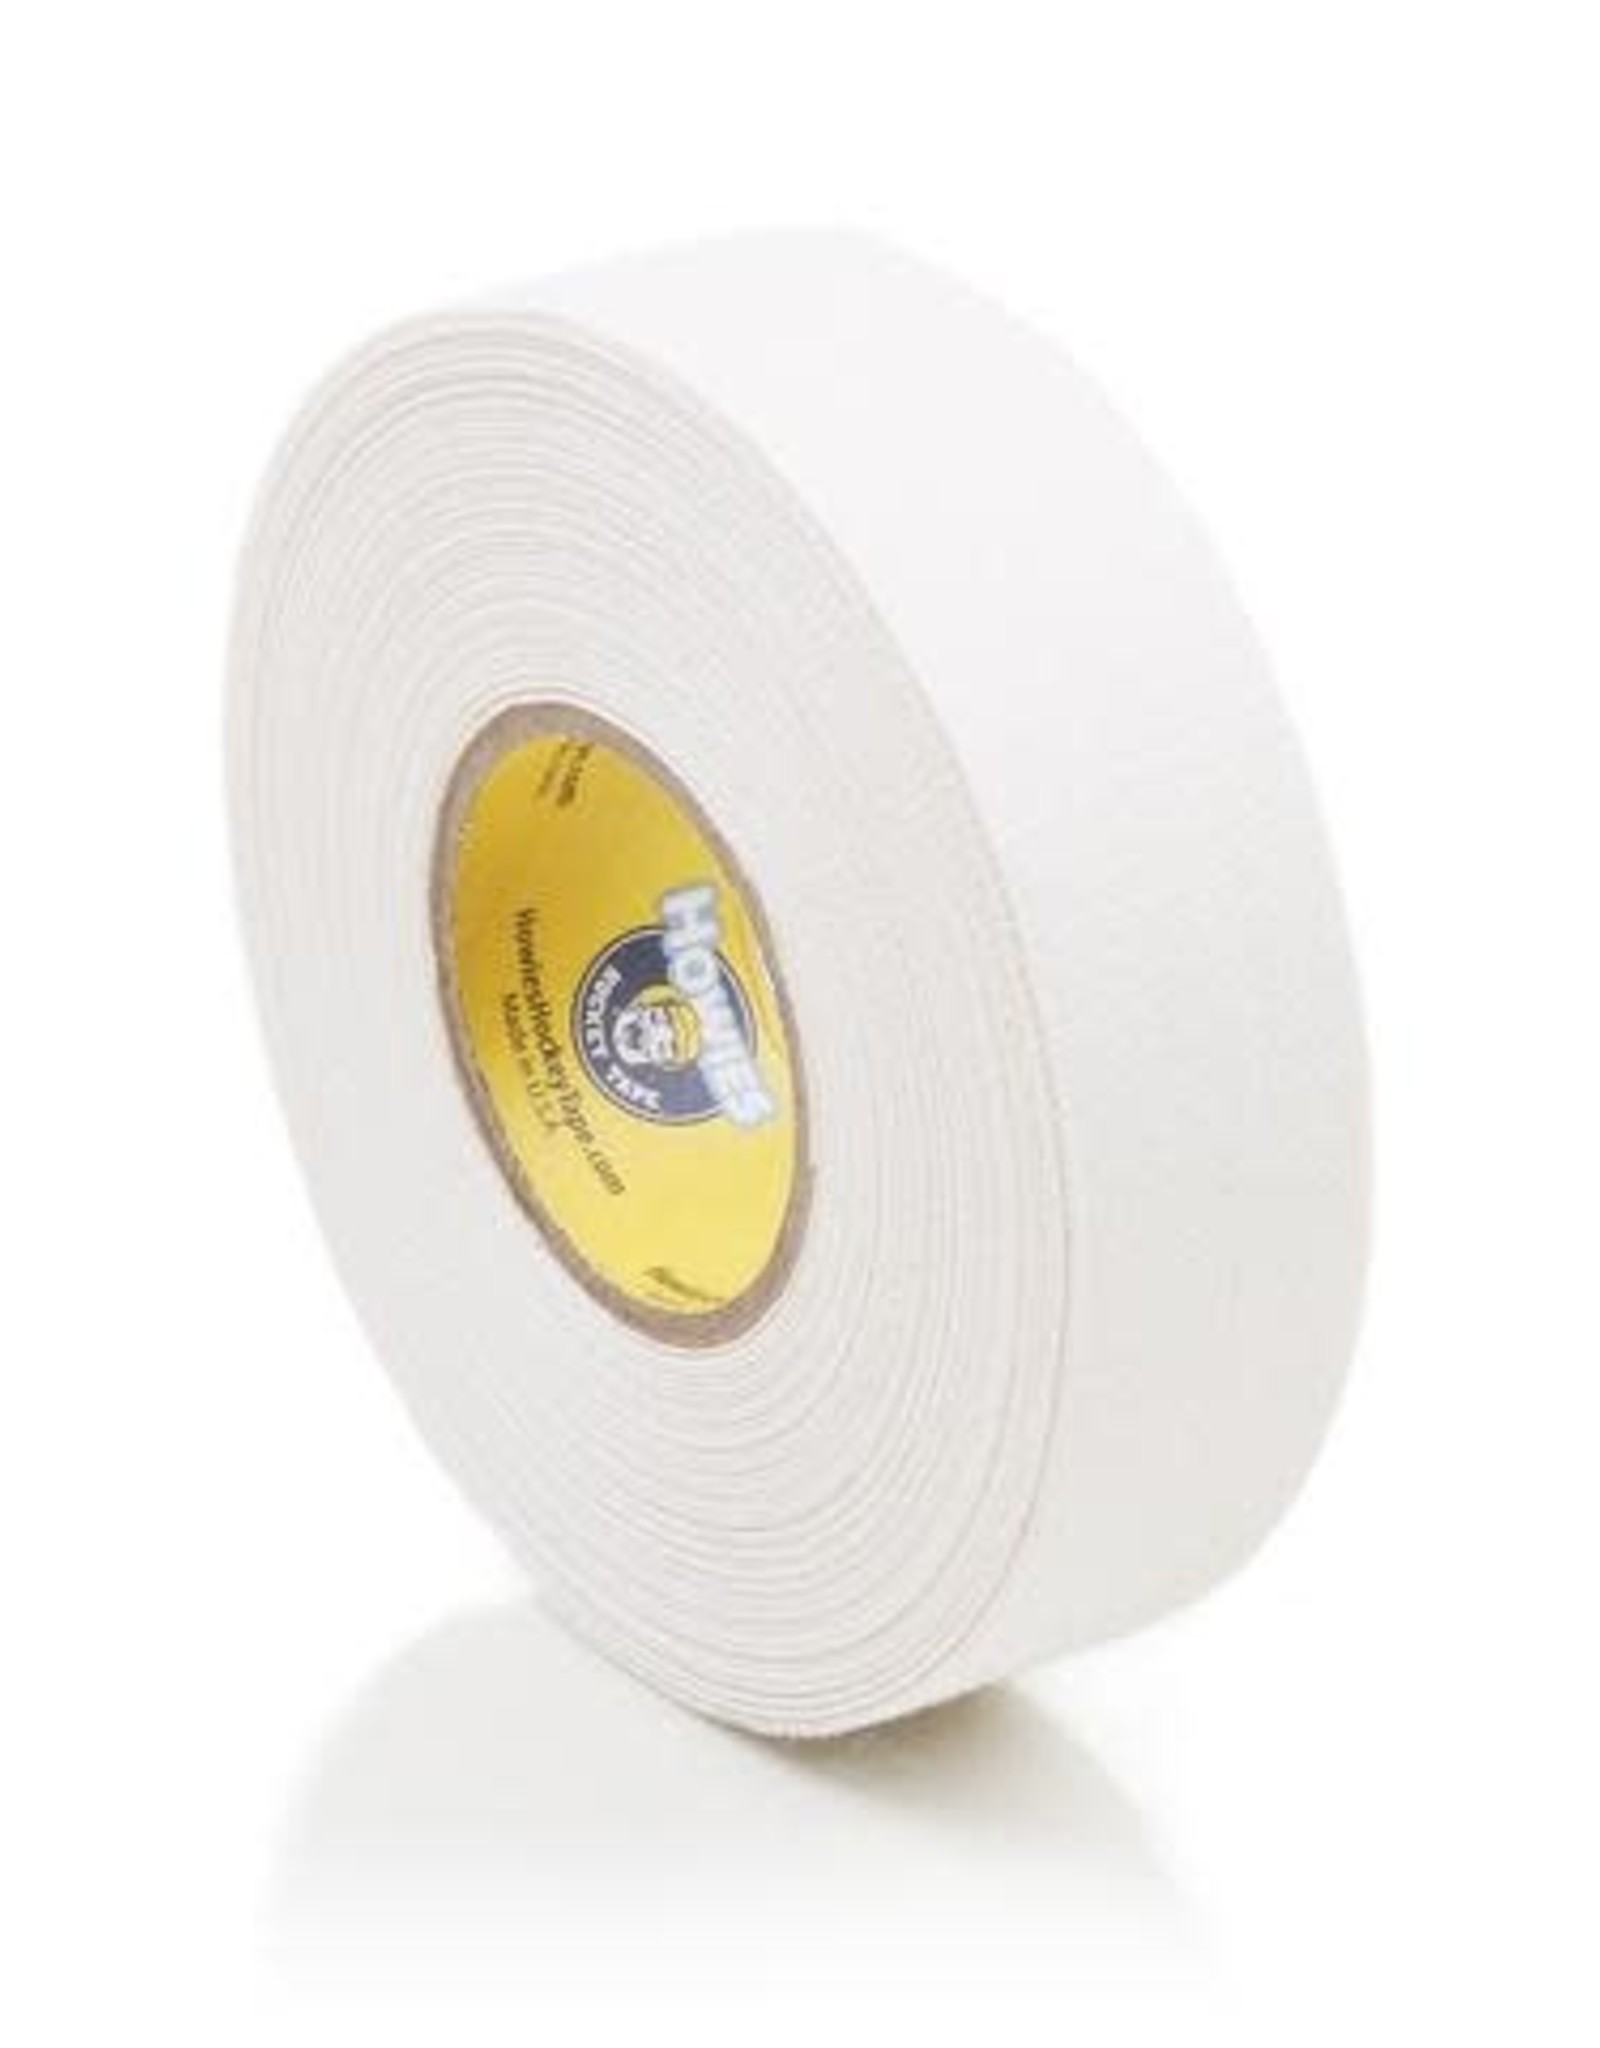 HOWIES Howies White Tape 25M